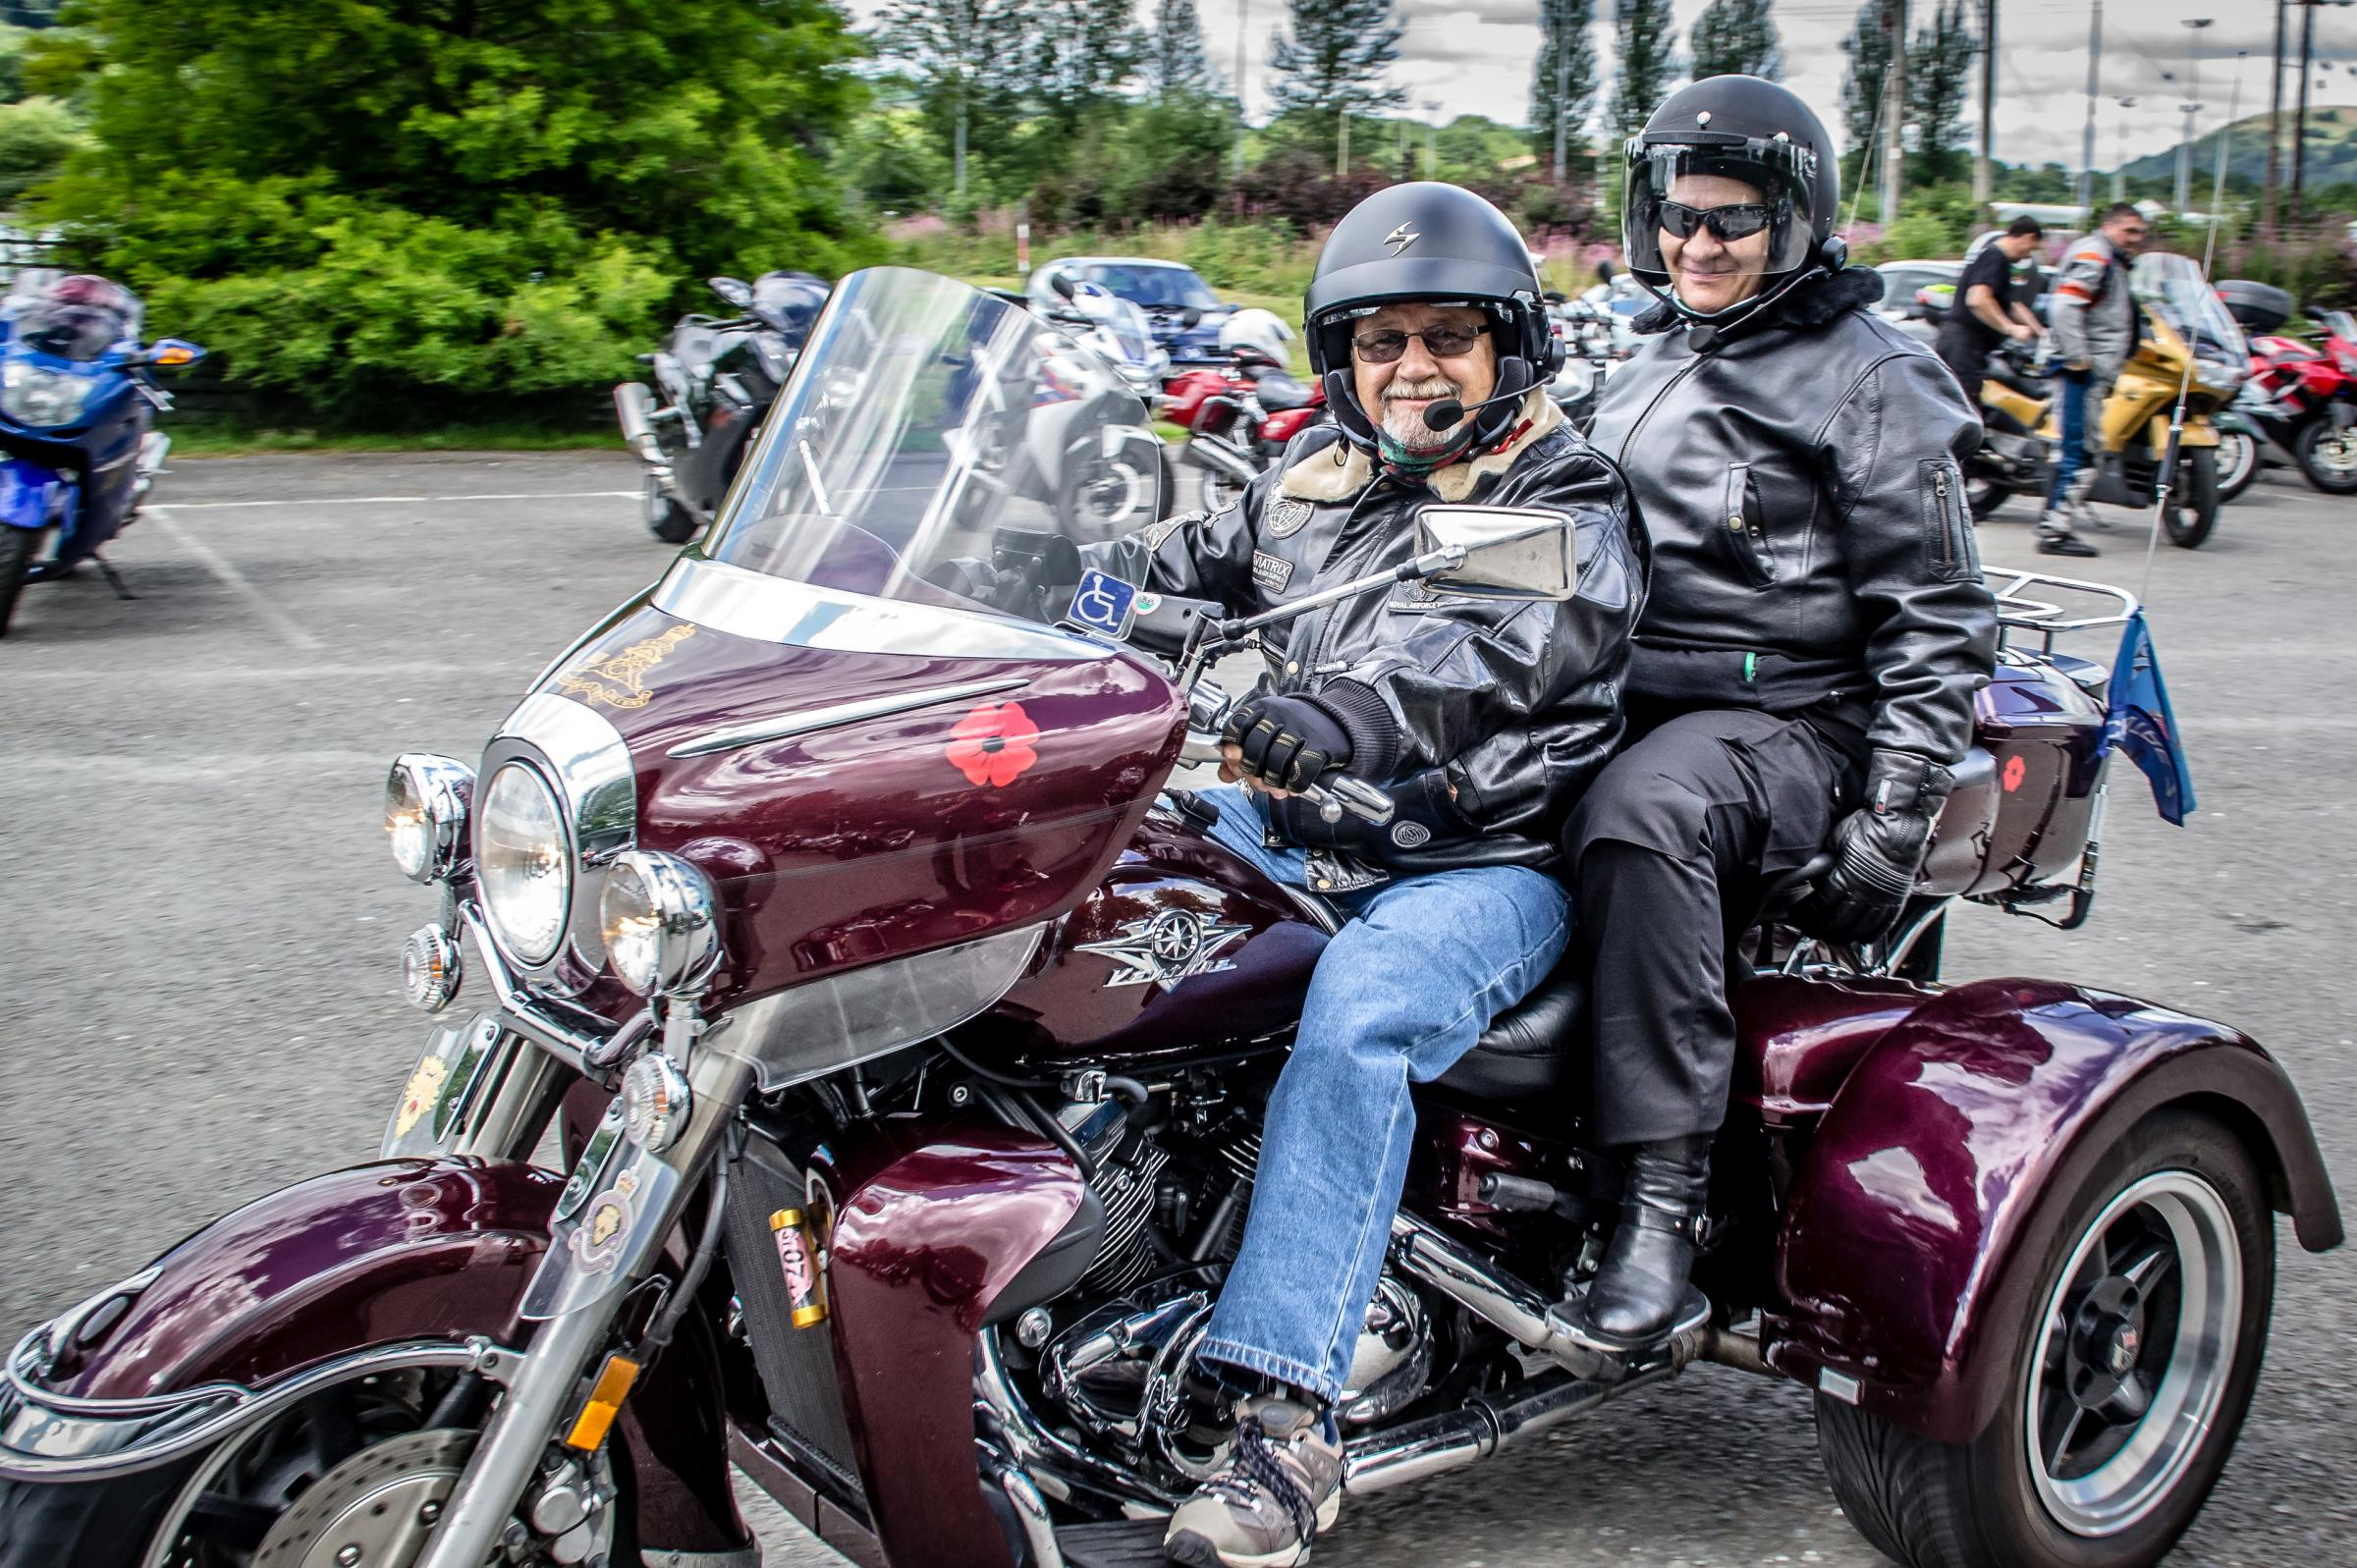 Bikers ride out to support charity